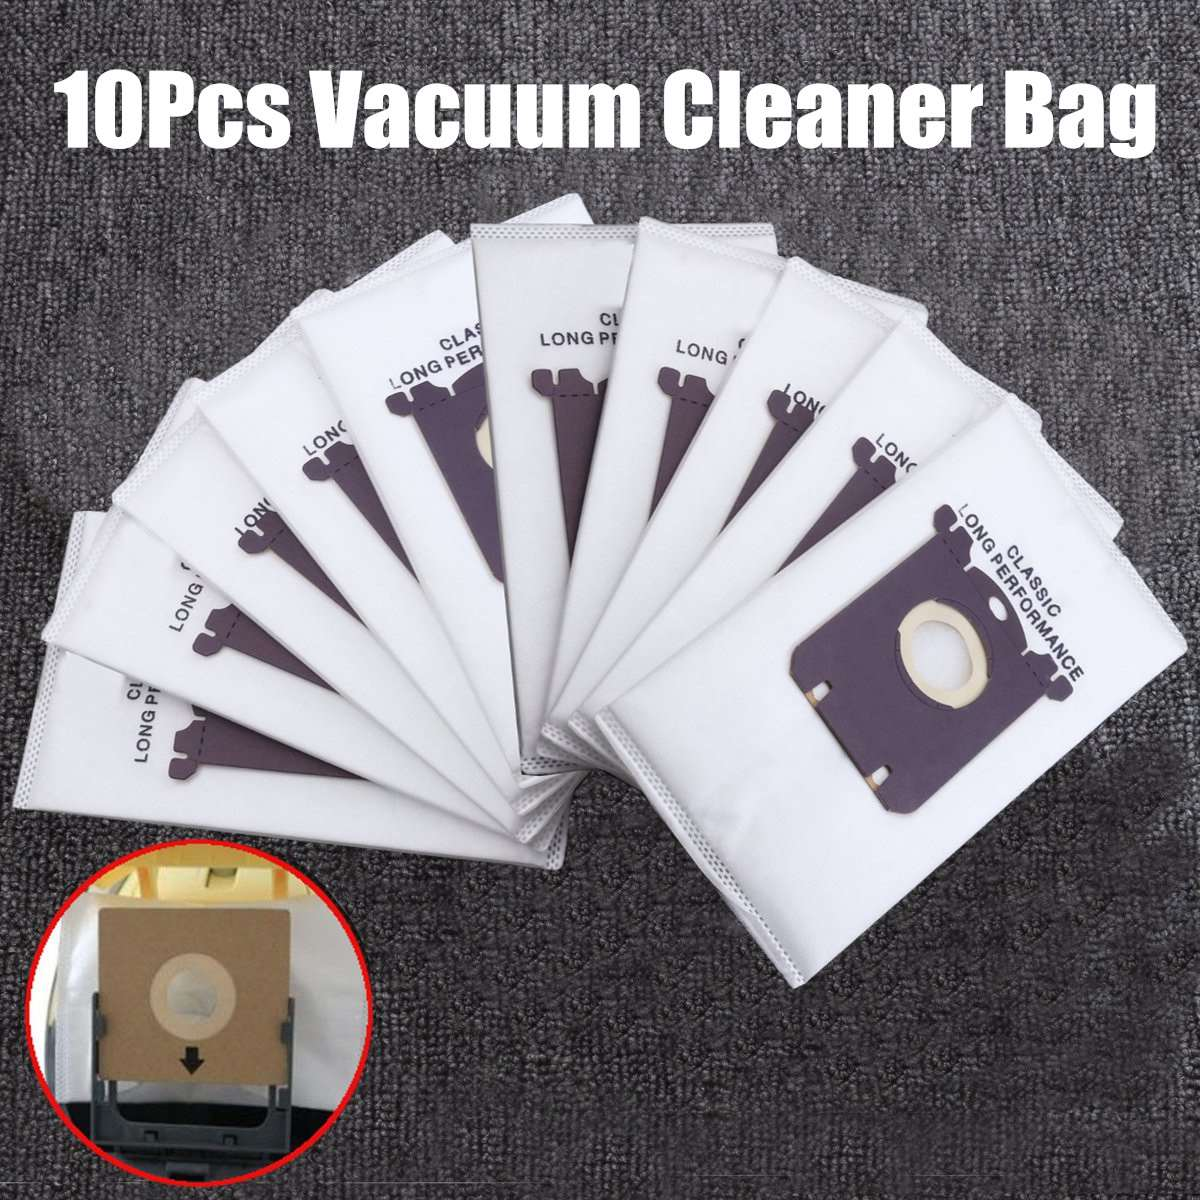 10x Vacuum Cleaner Bags Dust Bag Filter Electrolux S-bag Replacement for Philips FC9170 FC9062 FC9161 Performer etc. 10x vacuum cleaner bags dust bag filter electrolux s bag replacement for philips fc9170 fc9062 fc9161 performer etc